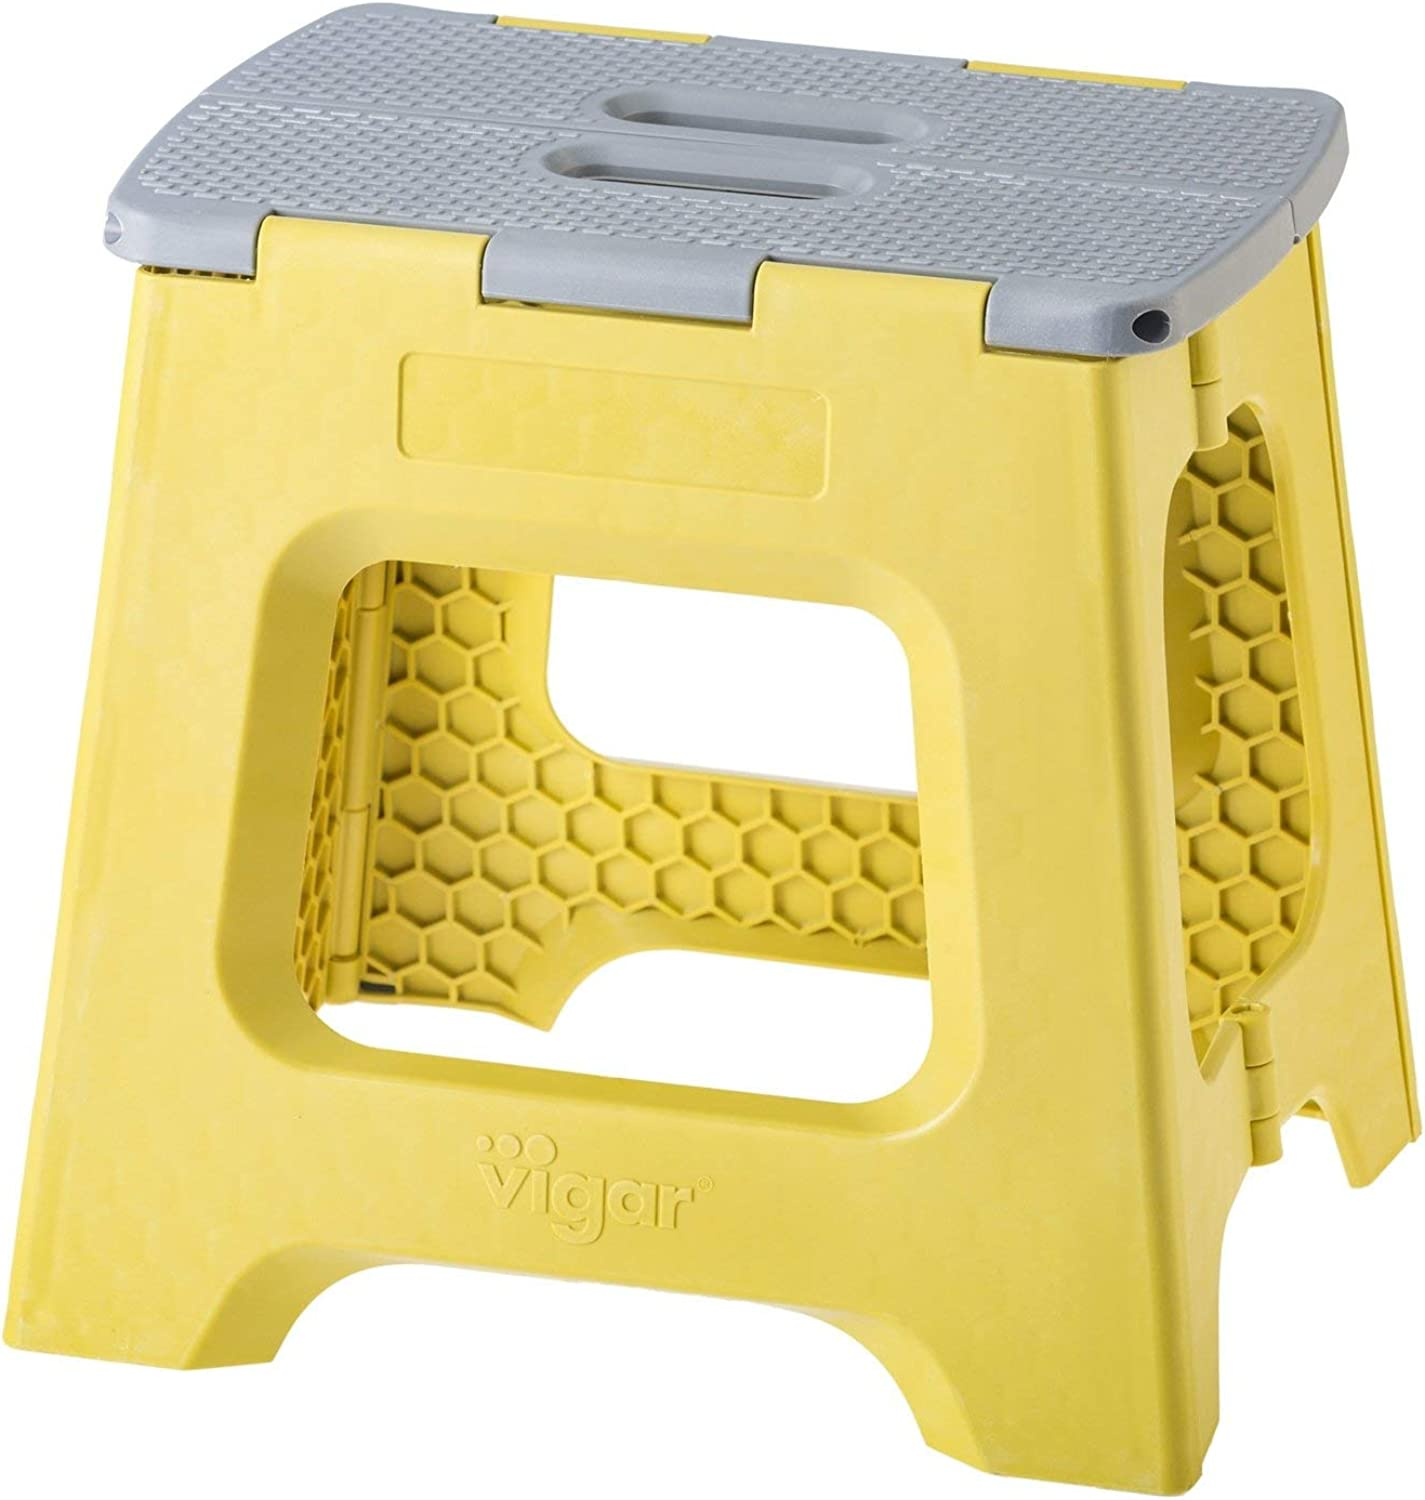 Vigar Compact Foldable Stool, 12-1 2 , Lightweight, 330-pound Capacity Non-Slip Folding Step Stool for Kids and Adults, Mustard